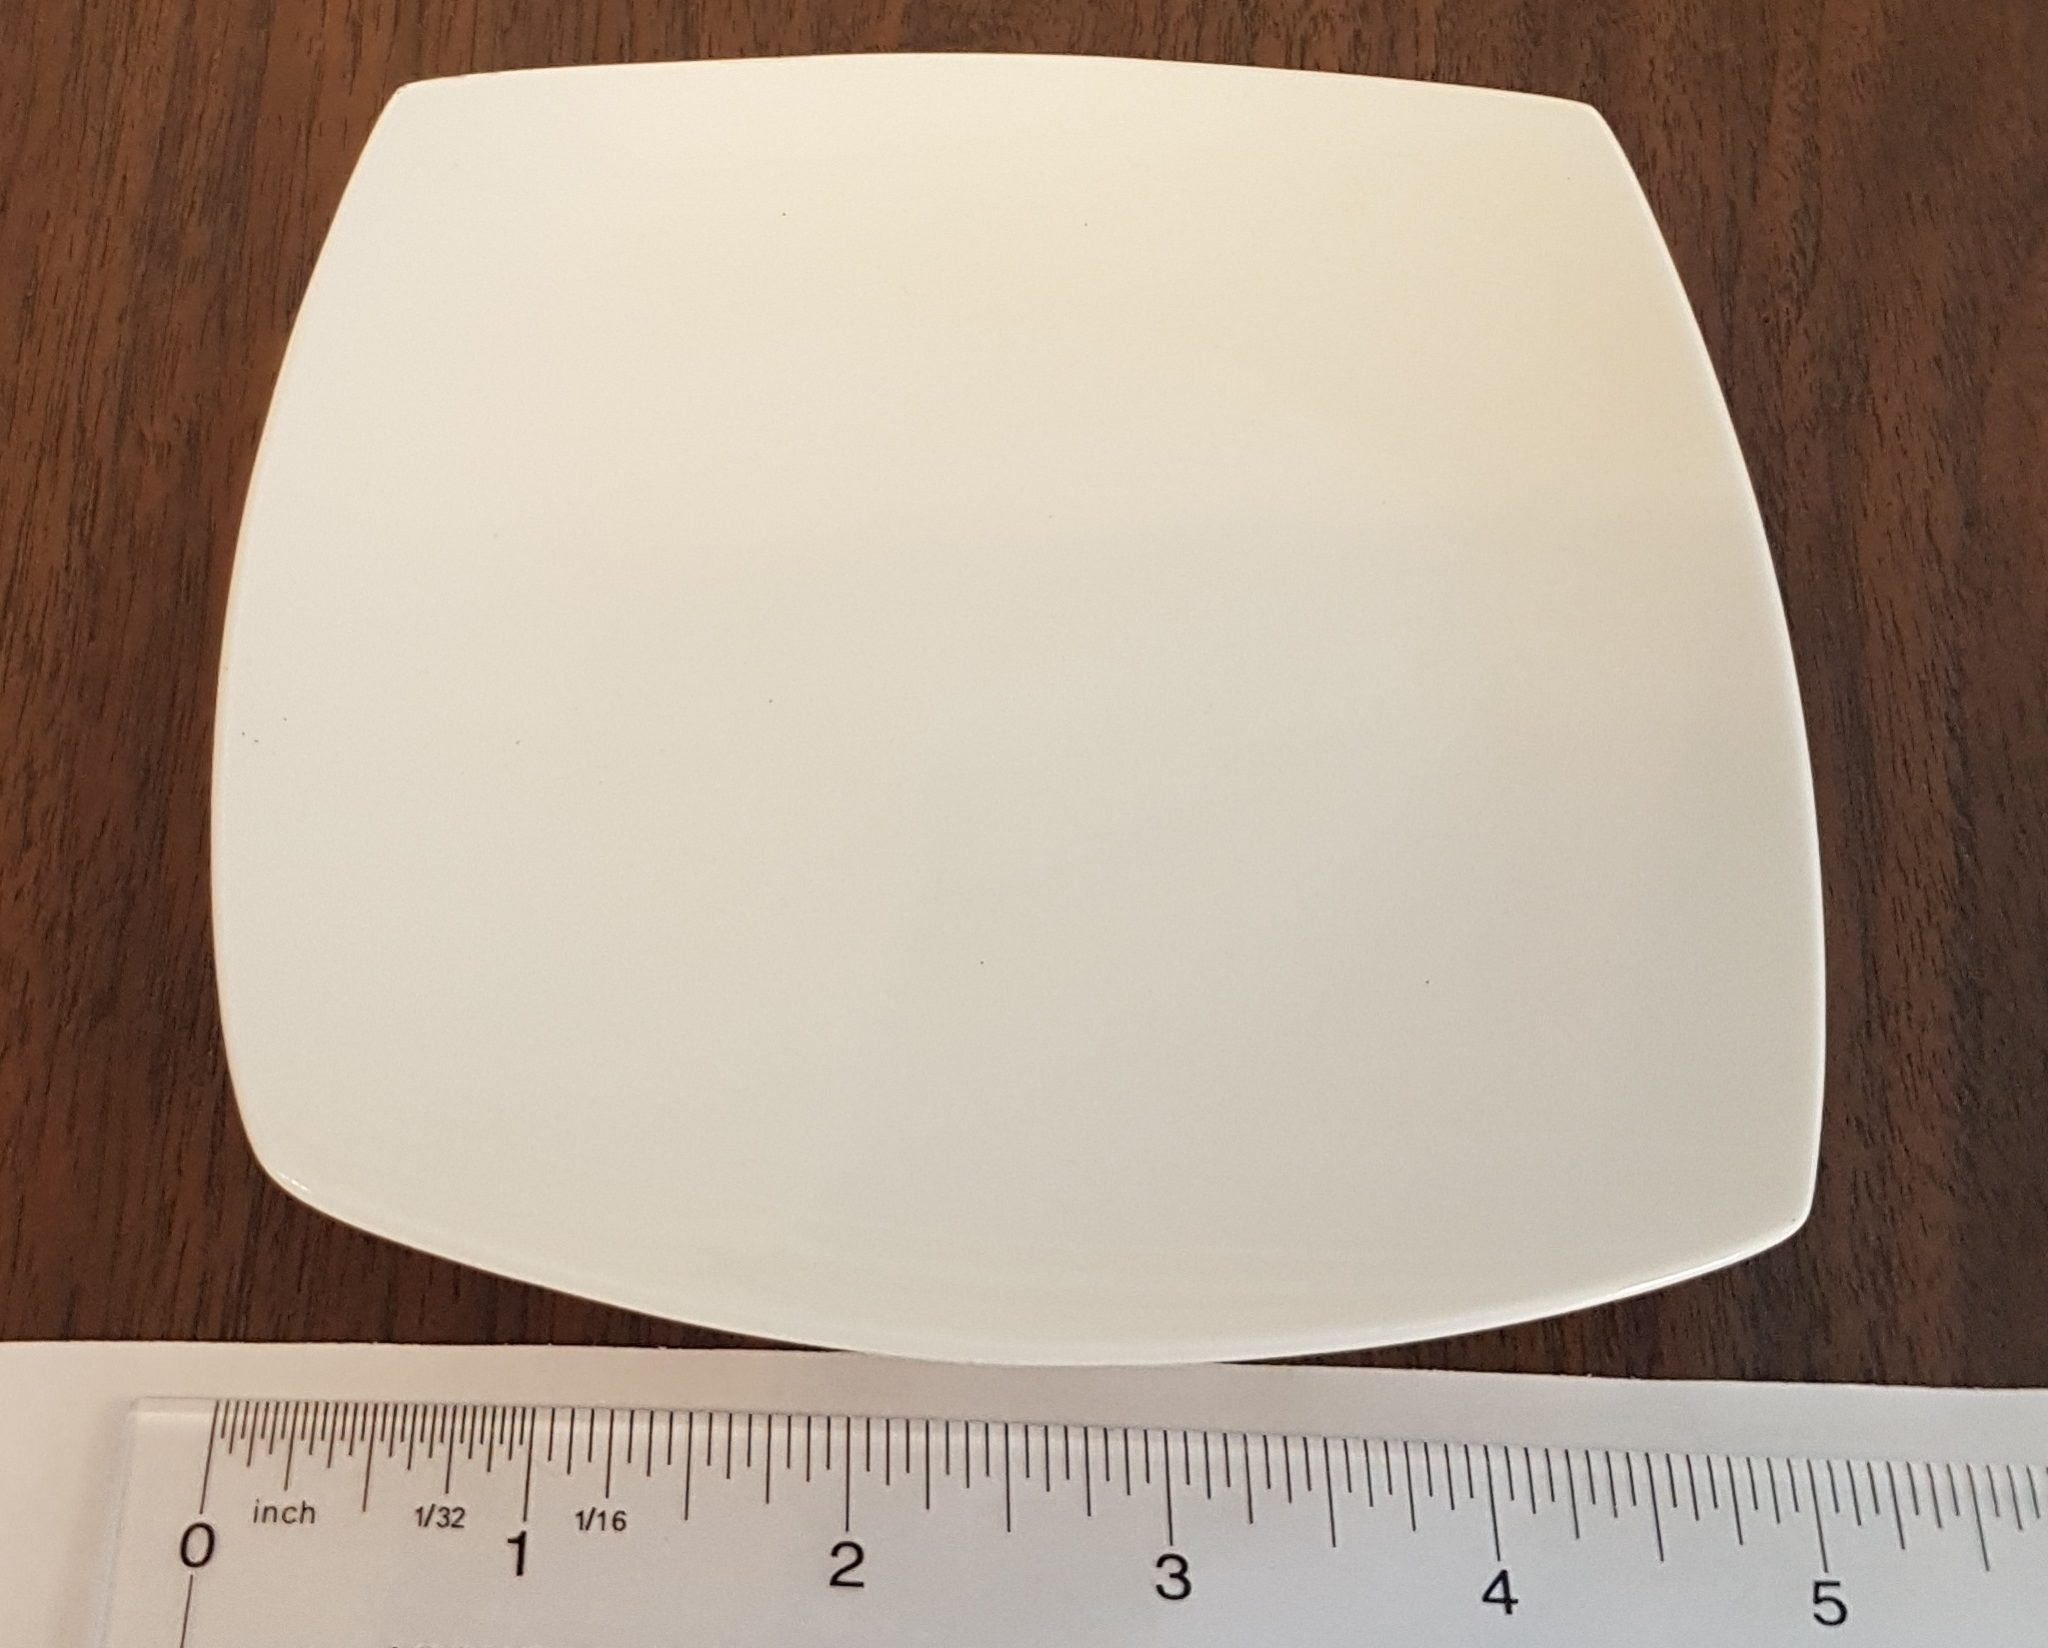 Small_Plate_or_Saucer_5_inch